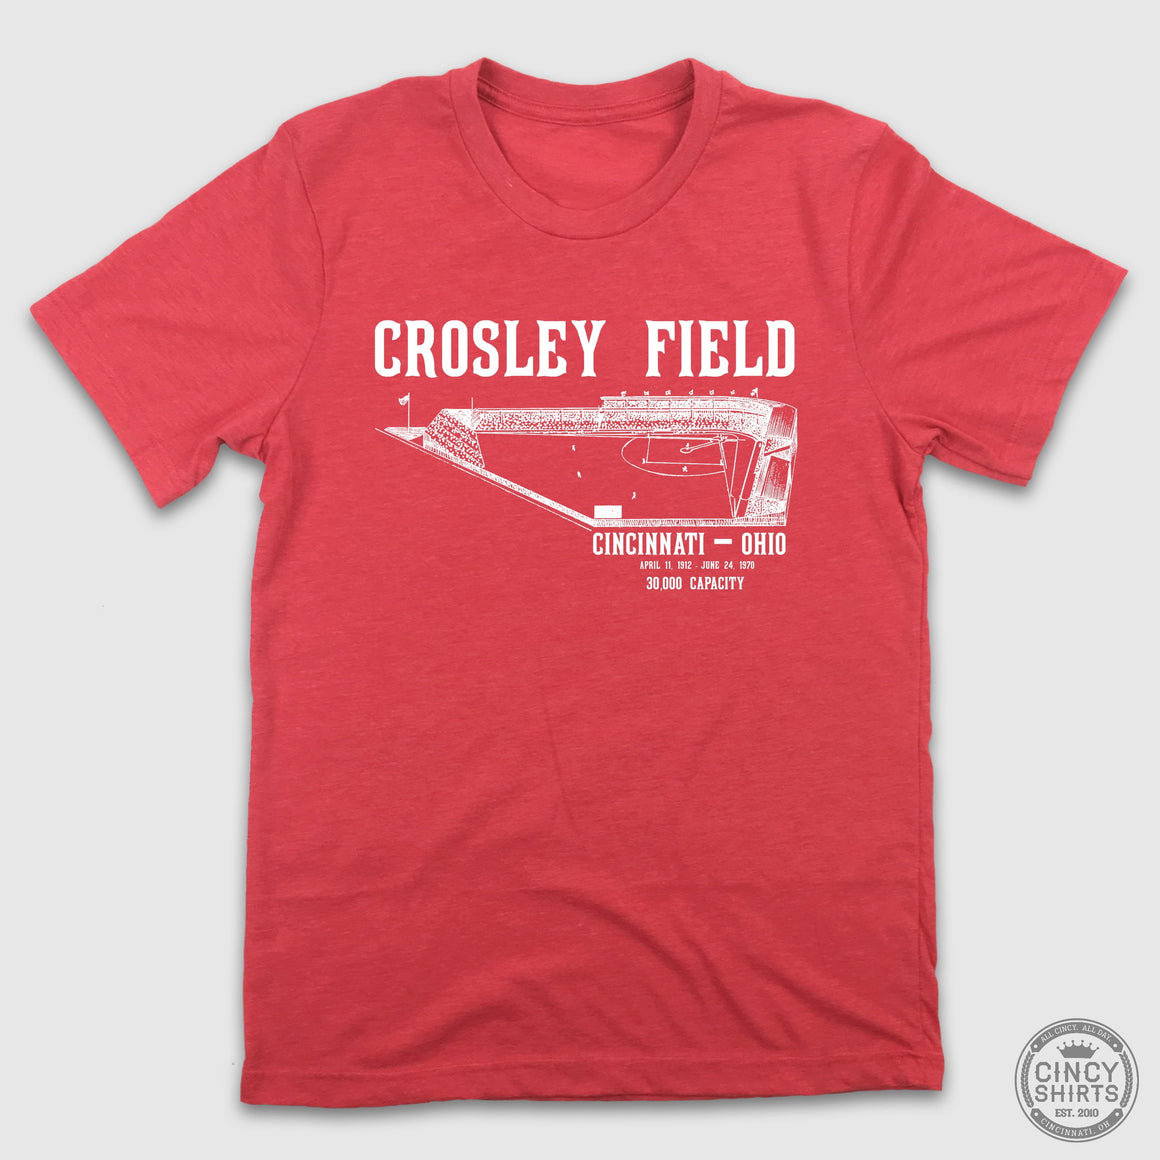 Crosley Field - Cincy Shirts